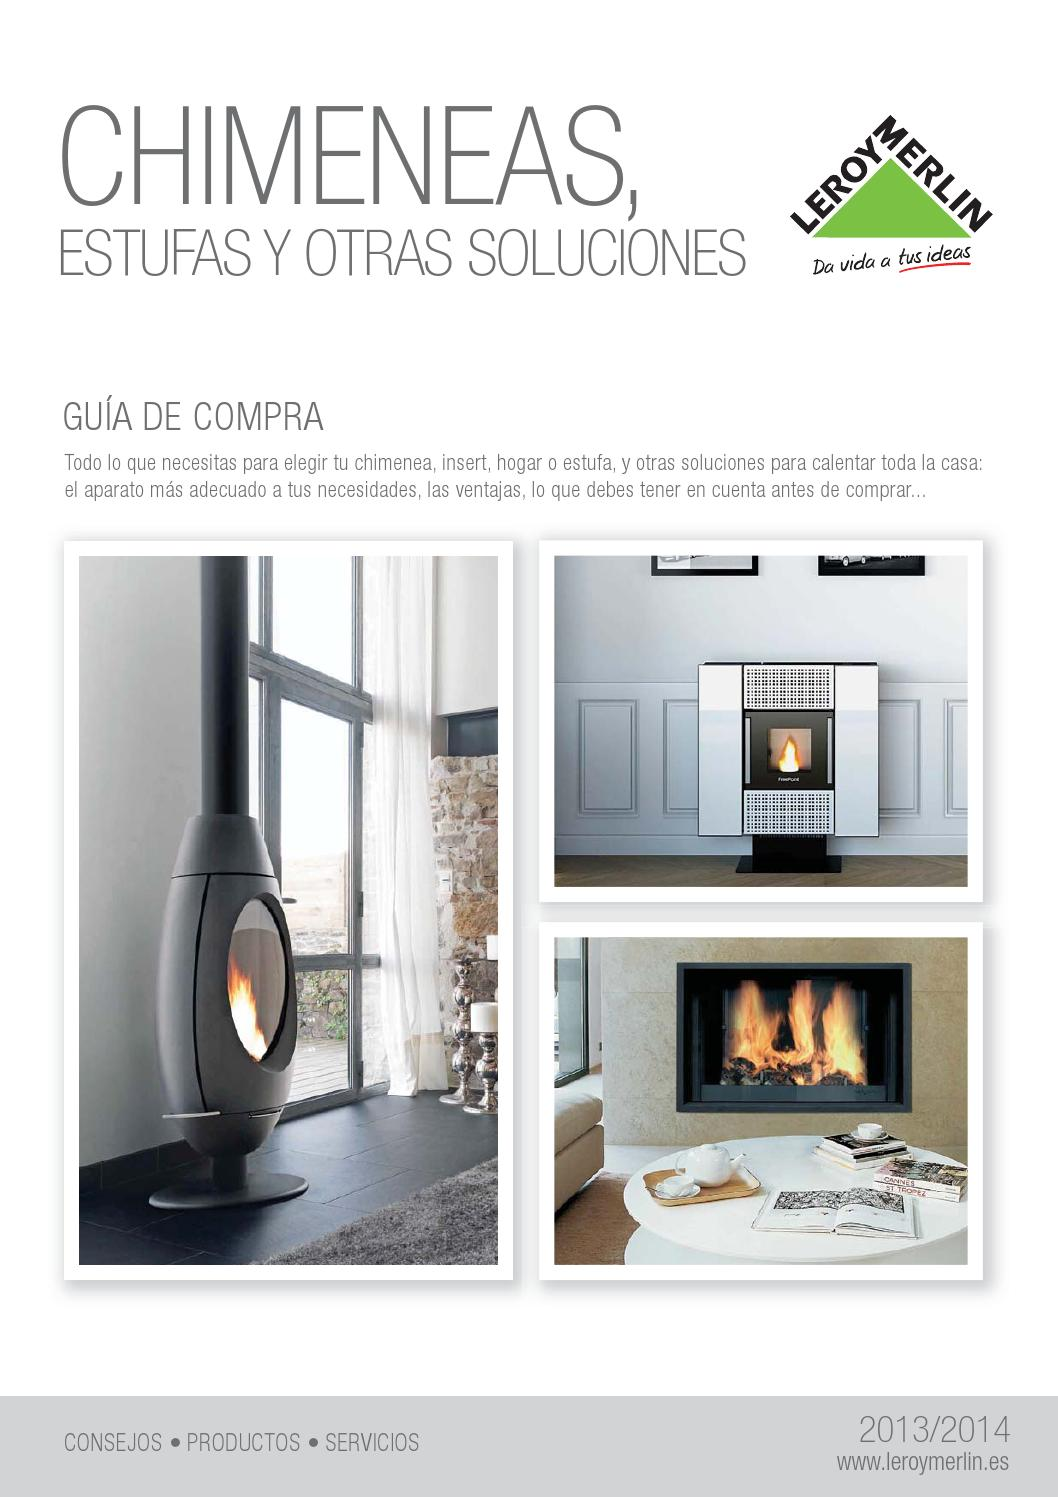 Chimeneas leroy merlin by issuu - Leroy merlin chimeneas ...